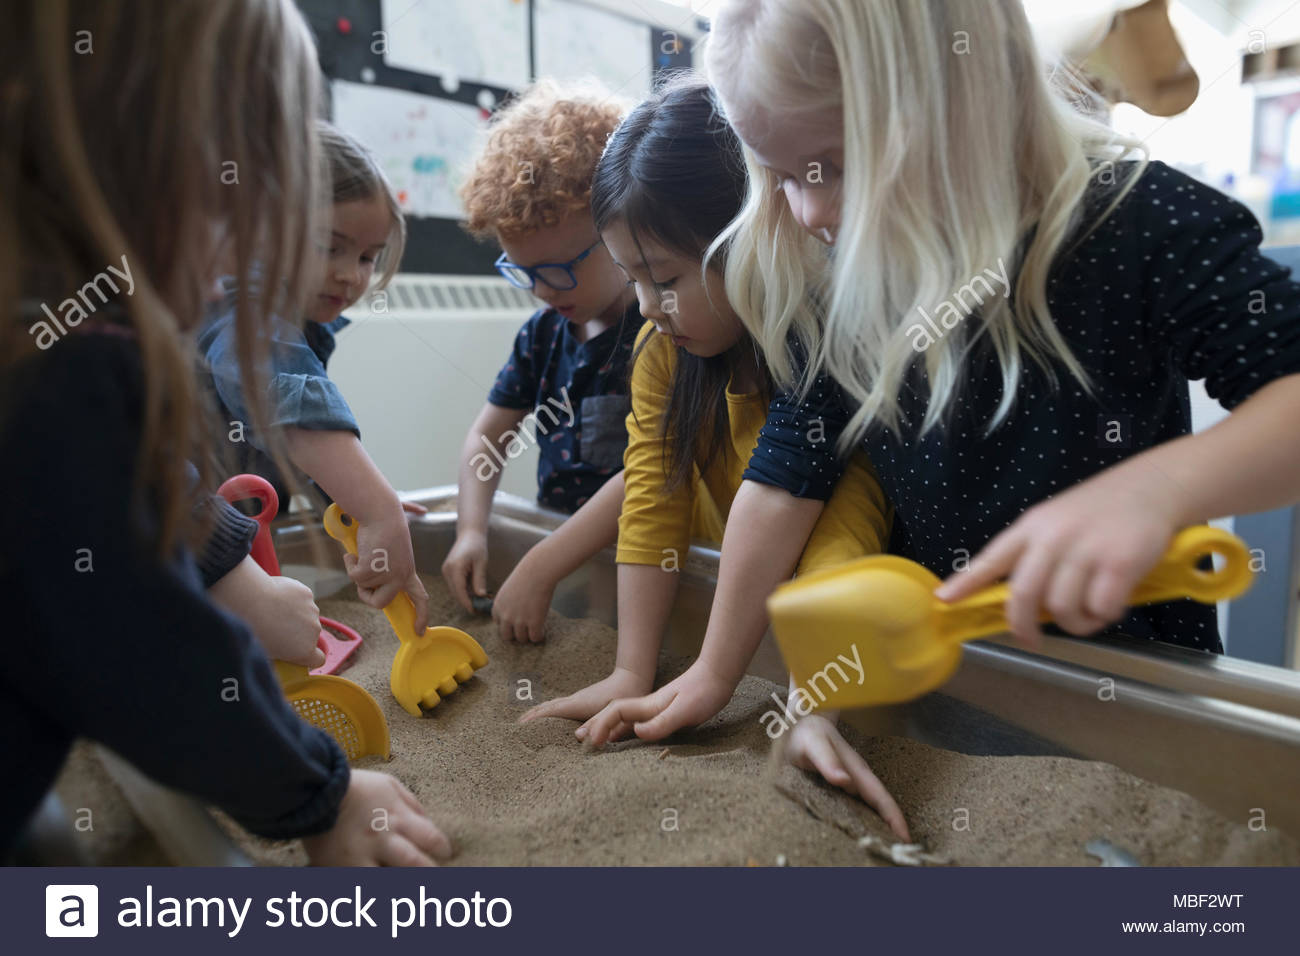 Preschool students playing in sandbox - Stock Image